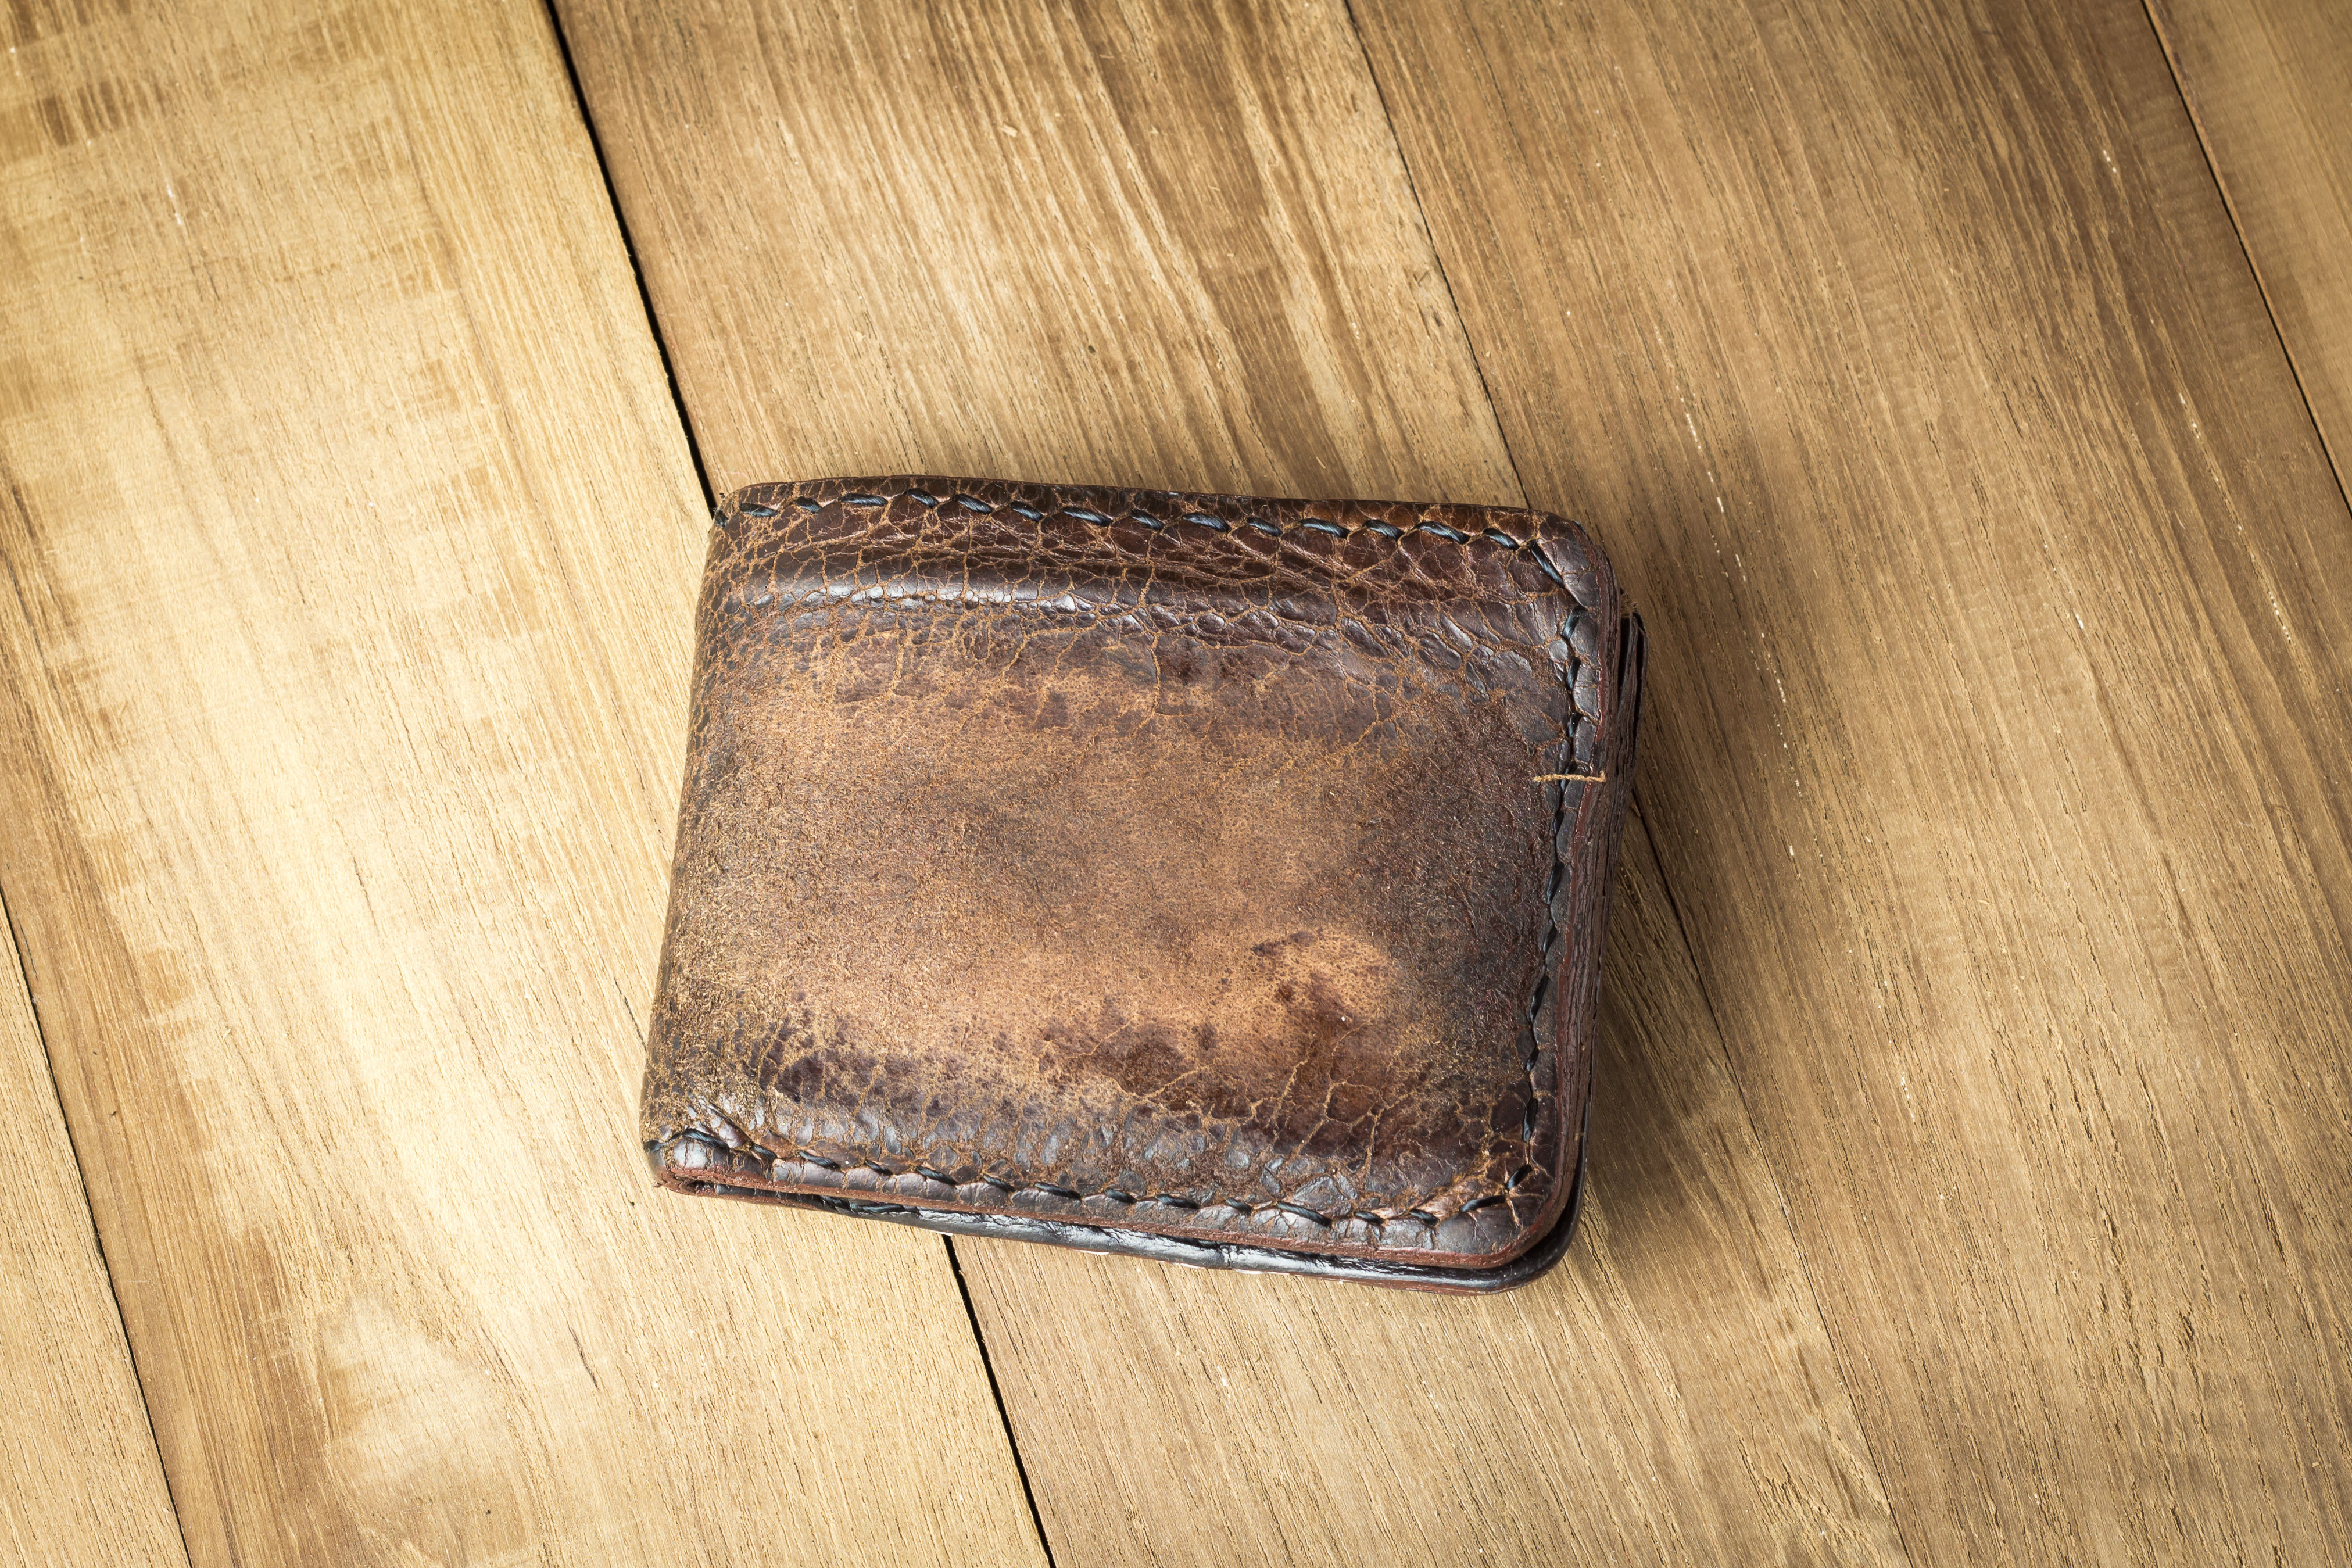 One World War, Two Countries and 77 Years Later, Georgia Man is Finally Reunited with Lost Wallet